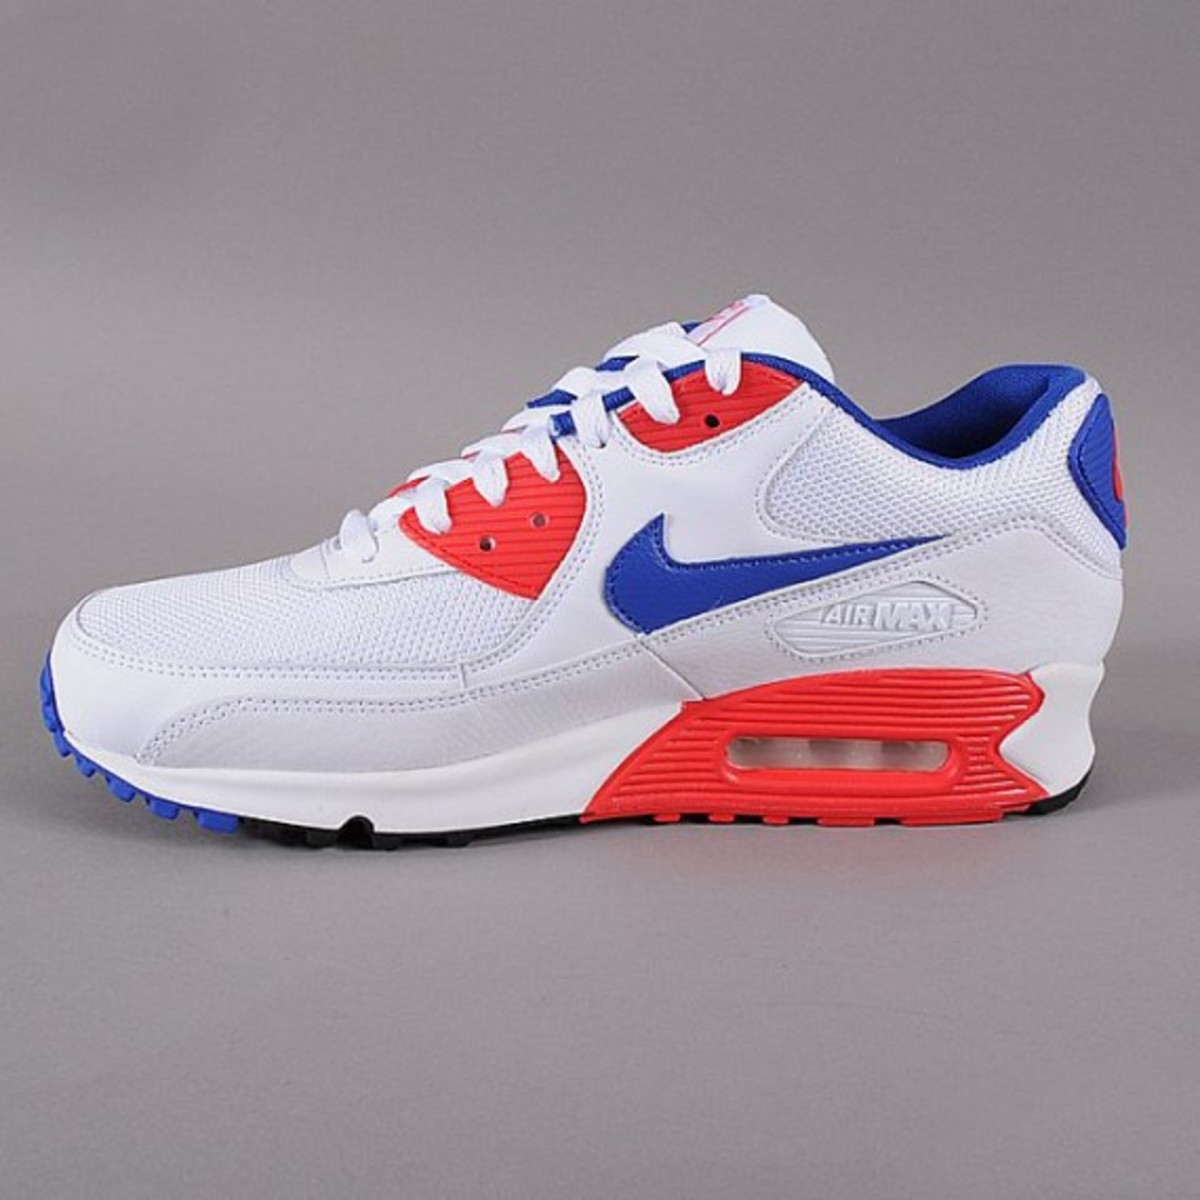 another chance 97f1b fc994 Nike Air Max 90 Essential - White/Hype Blue/Hyper Red ...